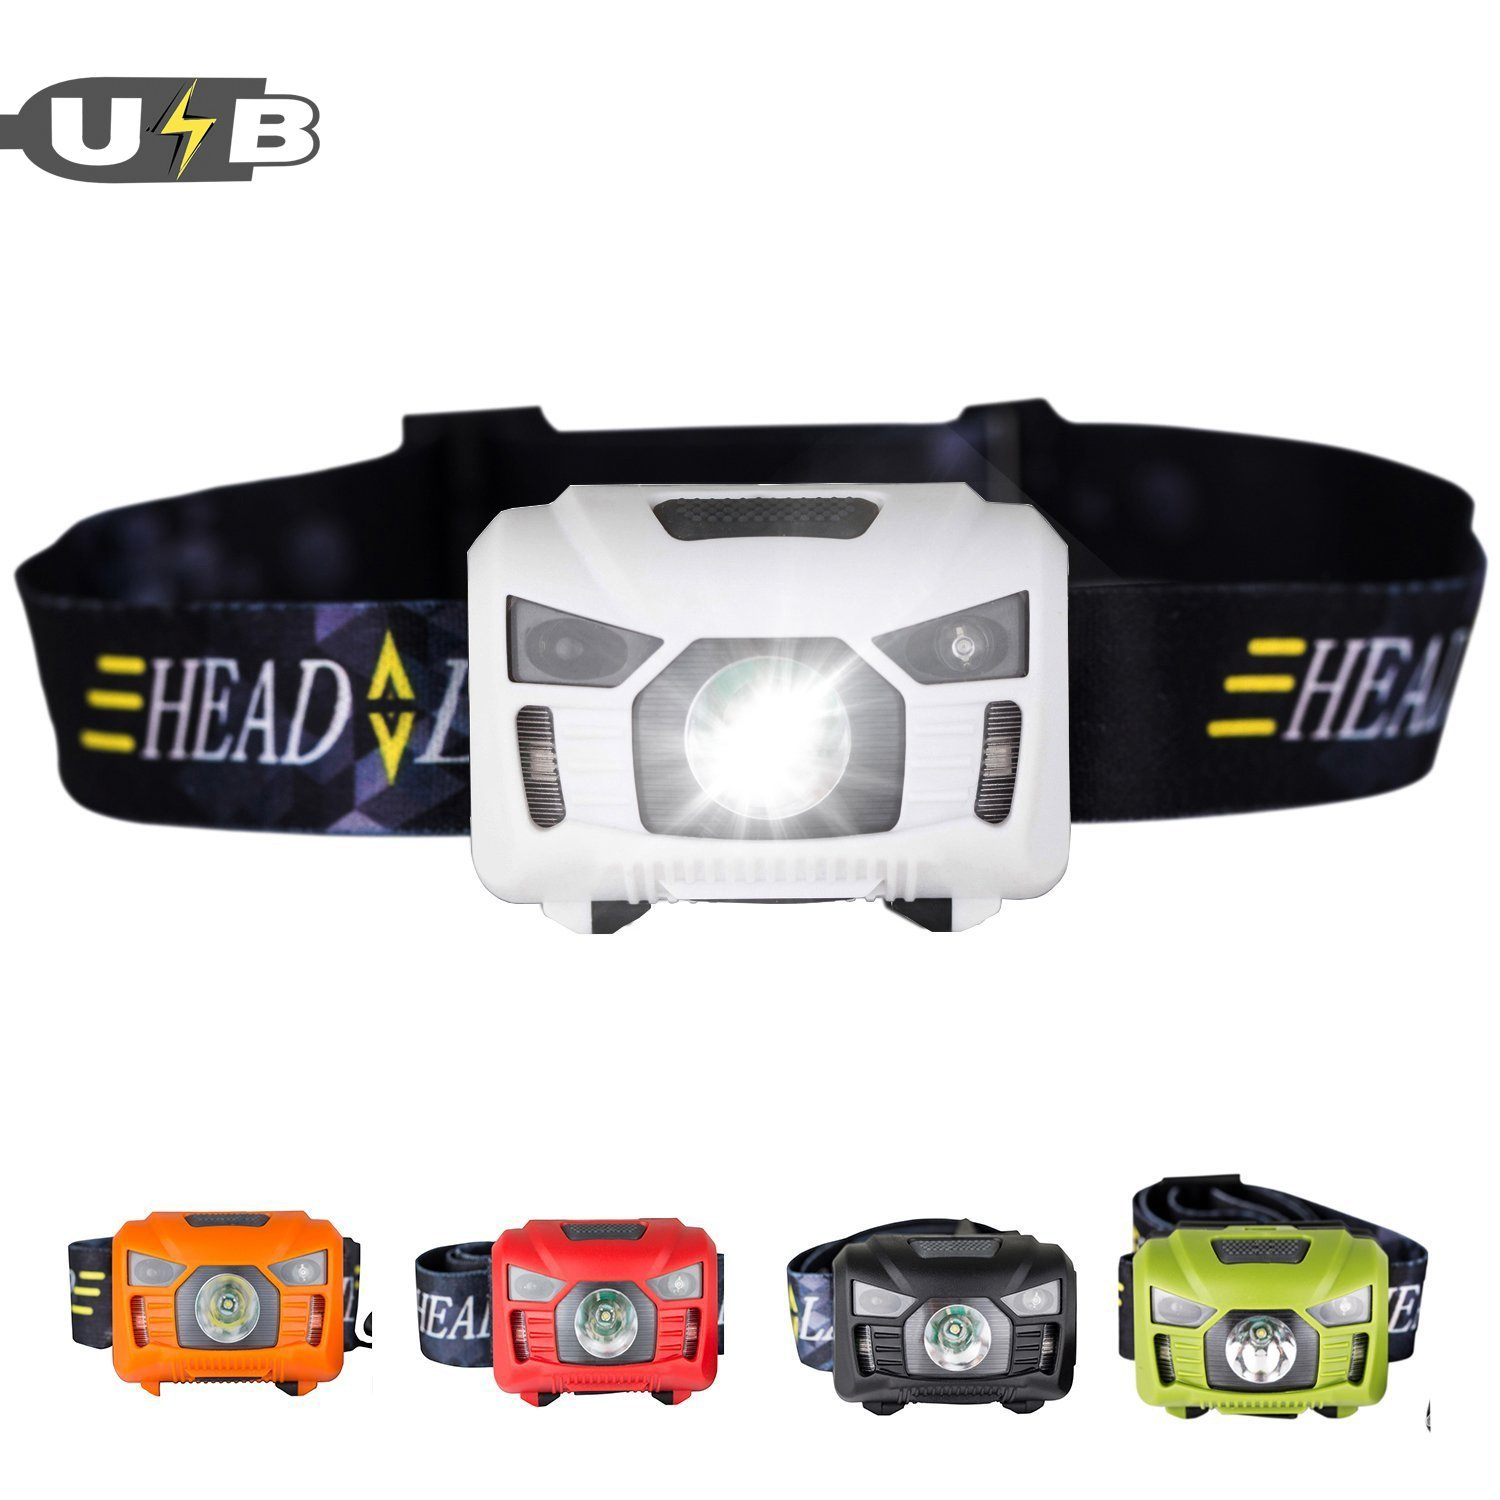 Three trees Rechargeable Headlamp Flashlight is a win win for my family